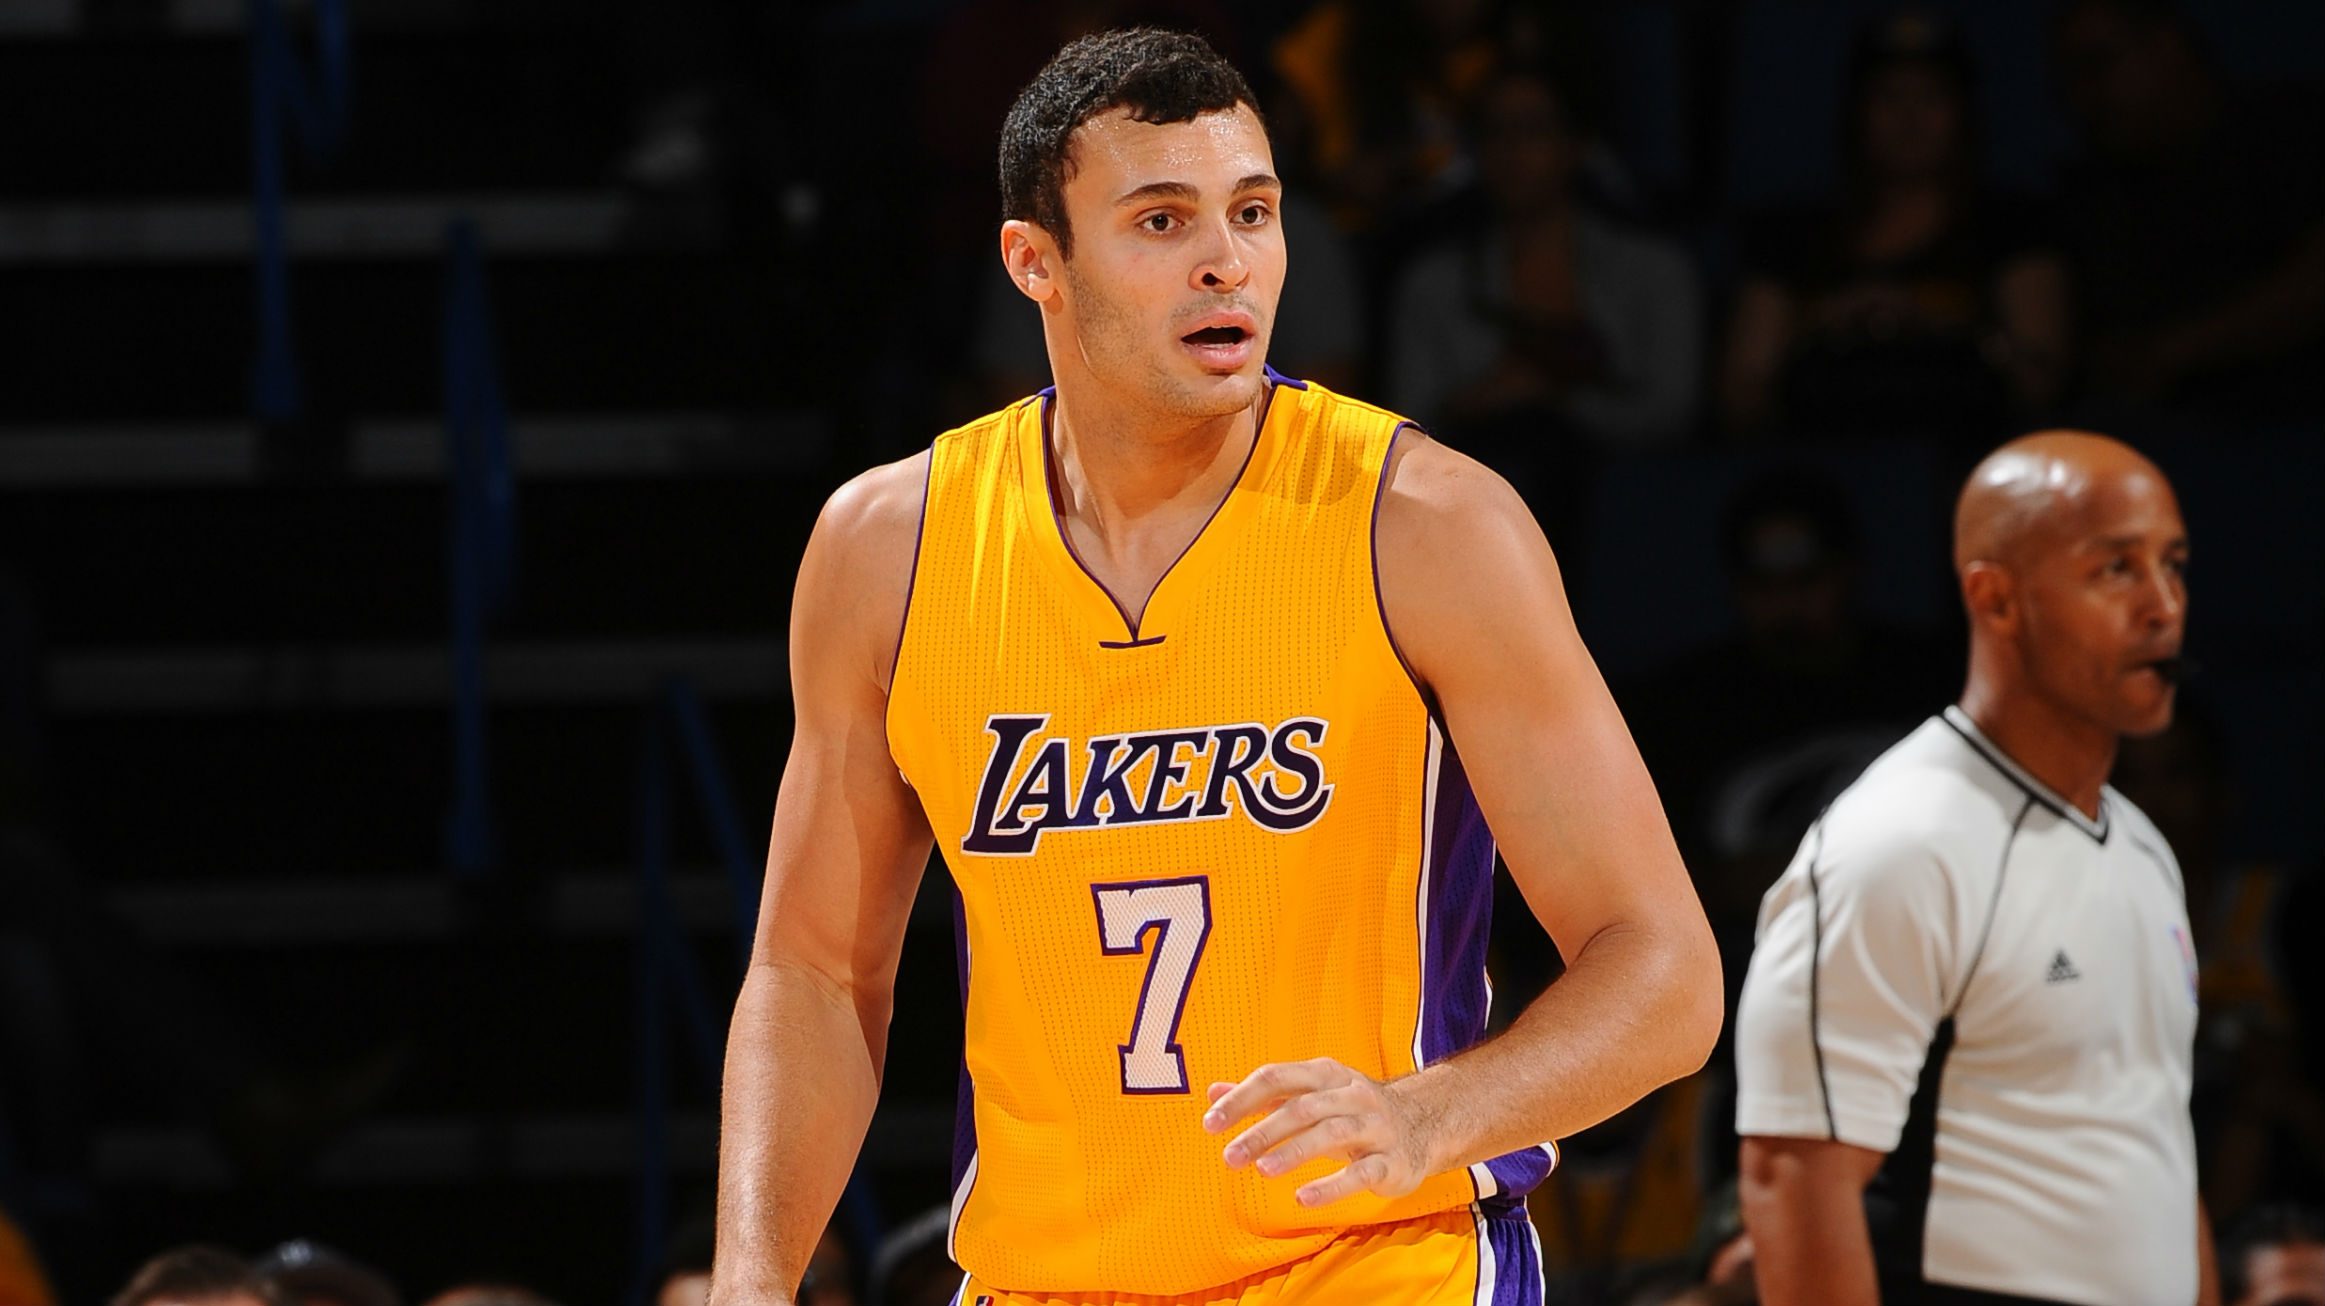 The Future is Bright for Larry Nance Jr and the Young Lakers